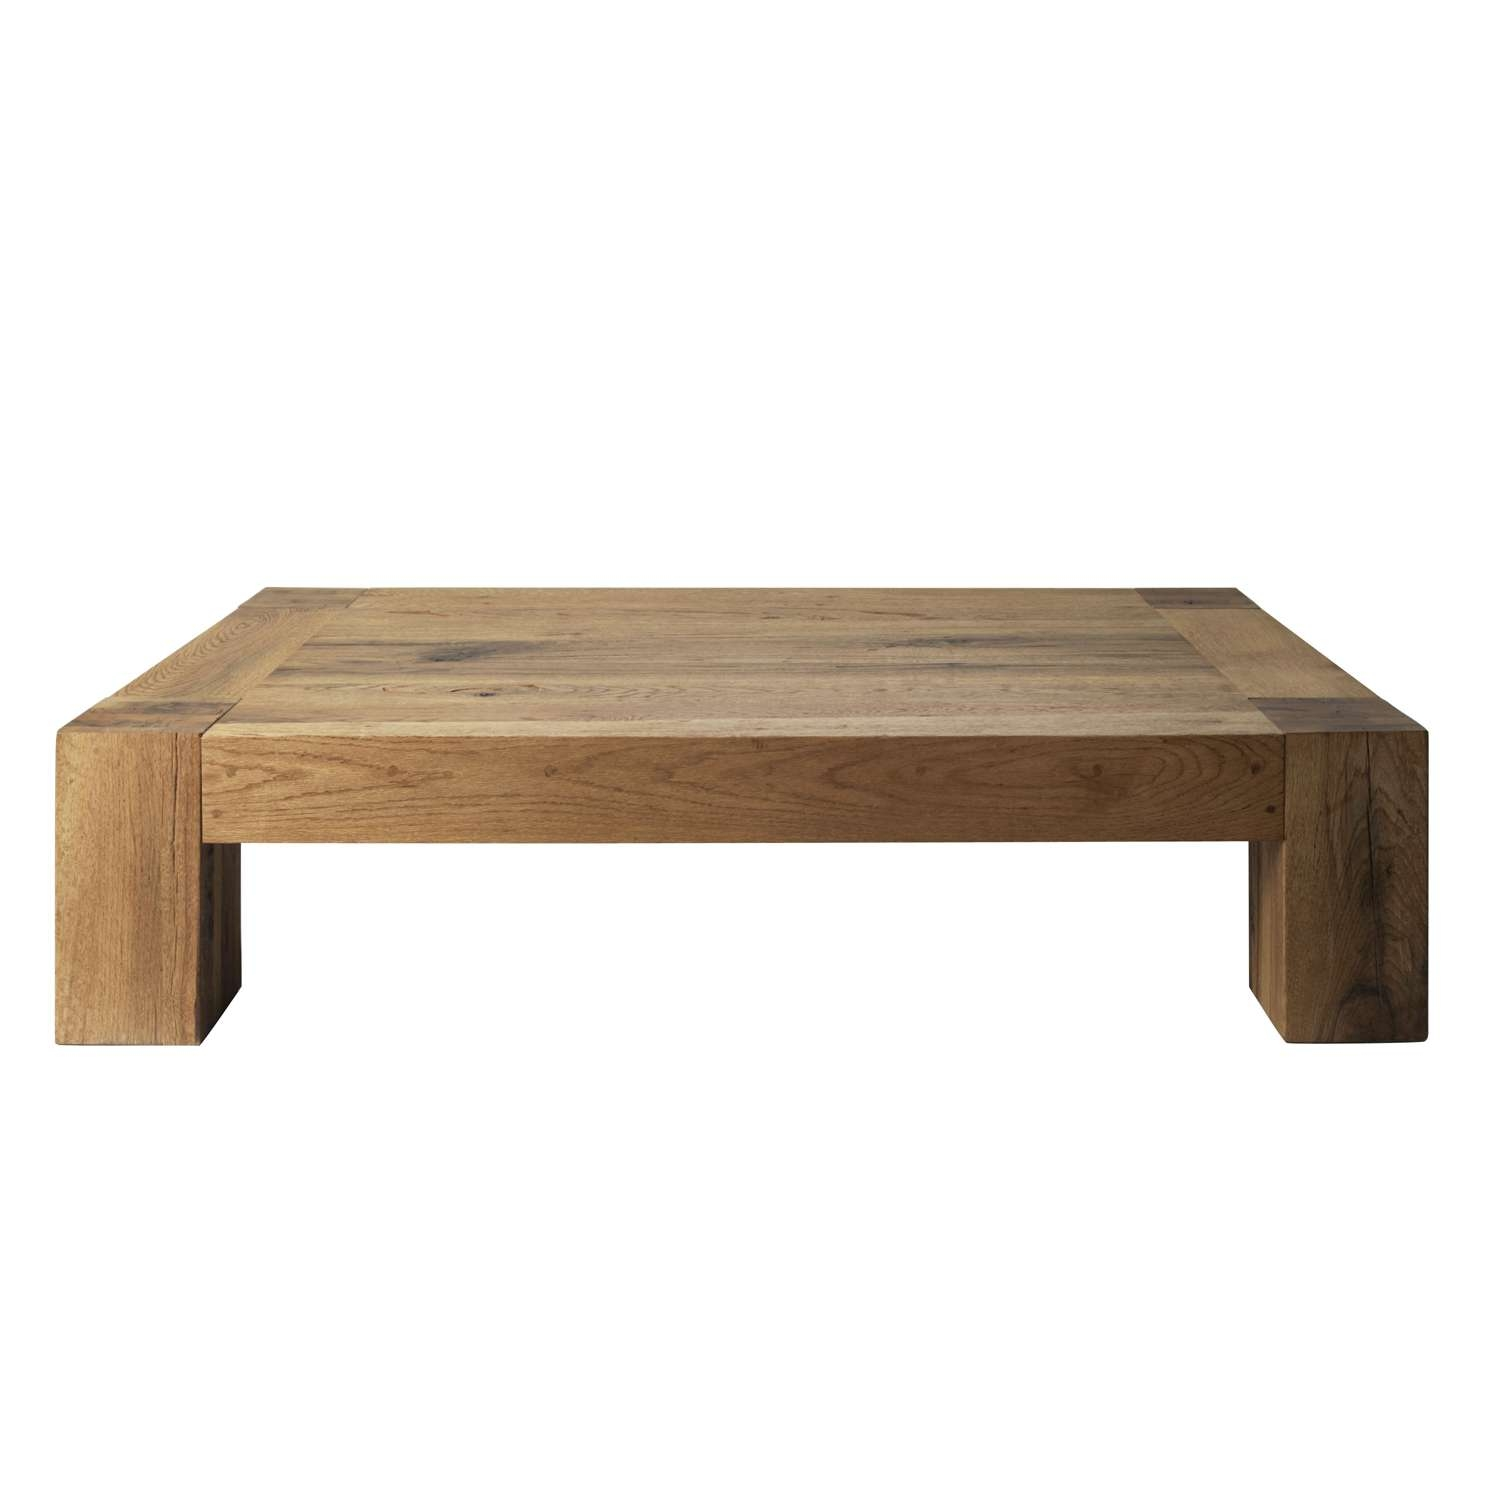 Coffee Table : Awesome City Furniture Coffee Tables Contemporary With Regard To Widely Used Low Square Wooden Coffee Tables (View 5 of 20)